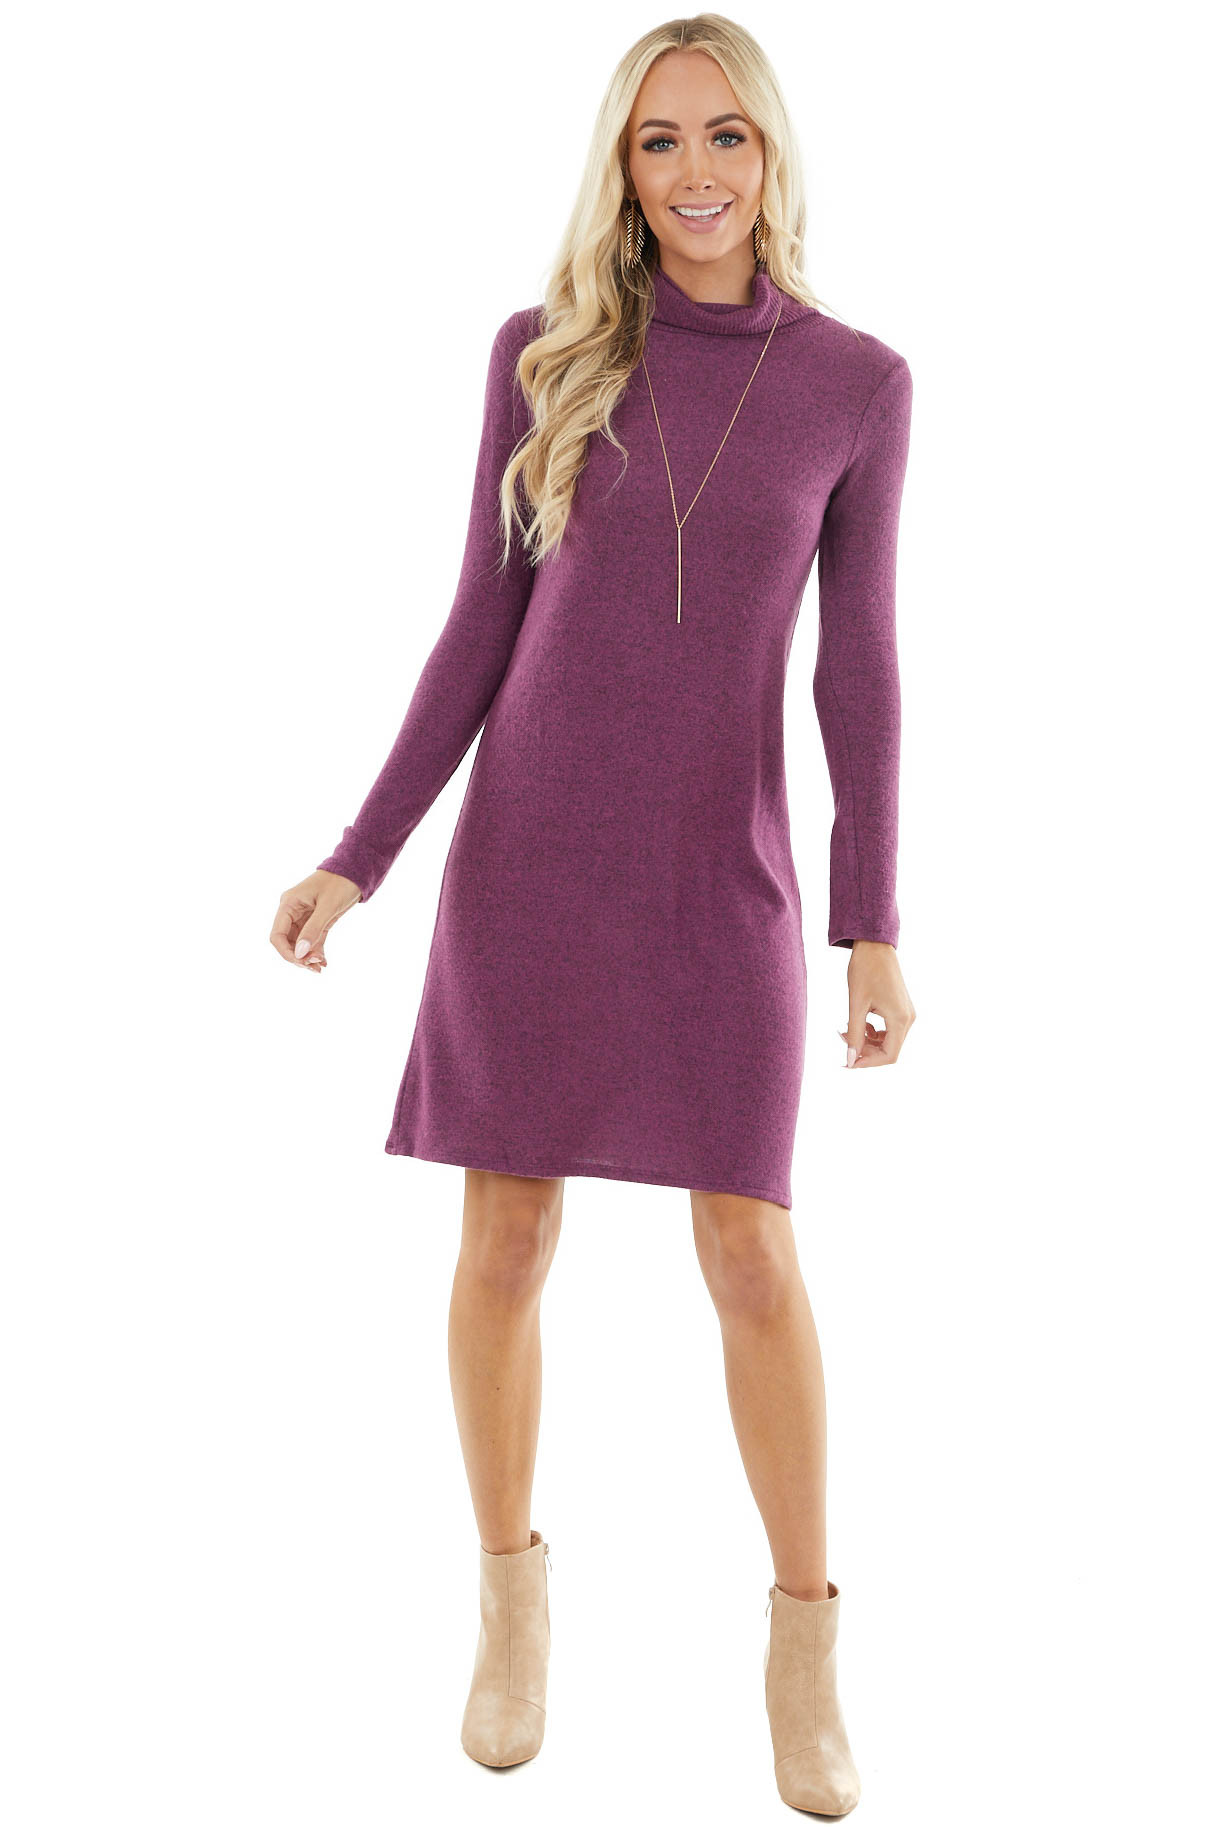 Light Plum Brushed Knit Turtleneck Dress with Long Sleeves